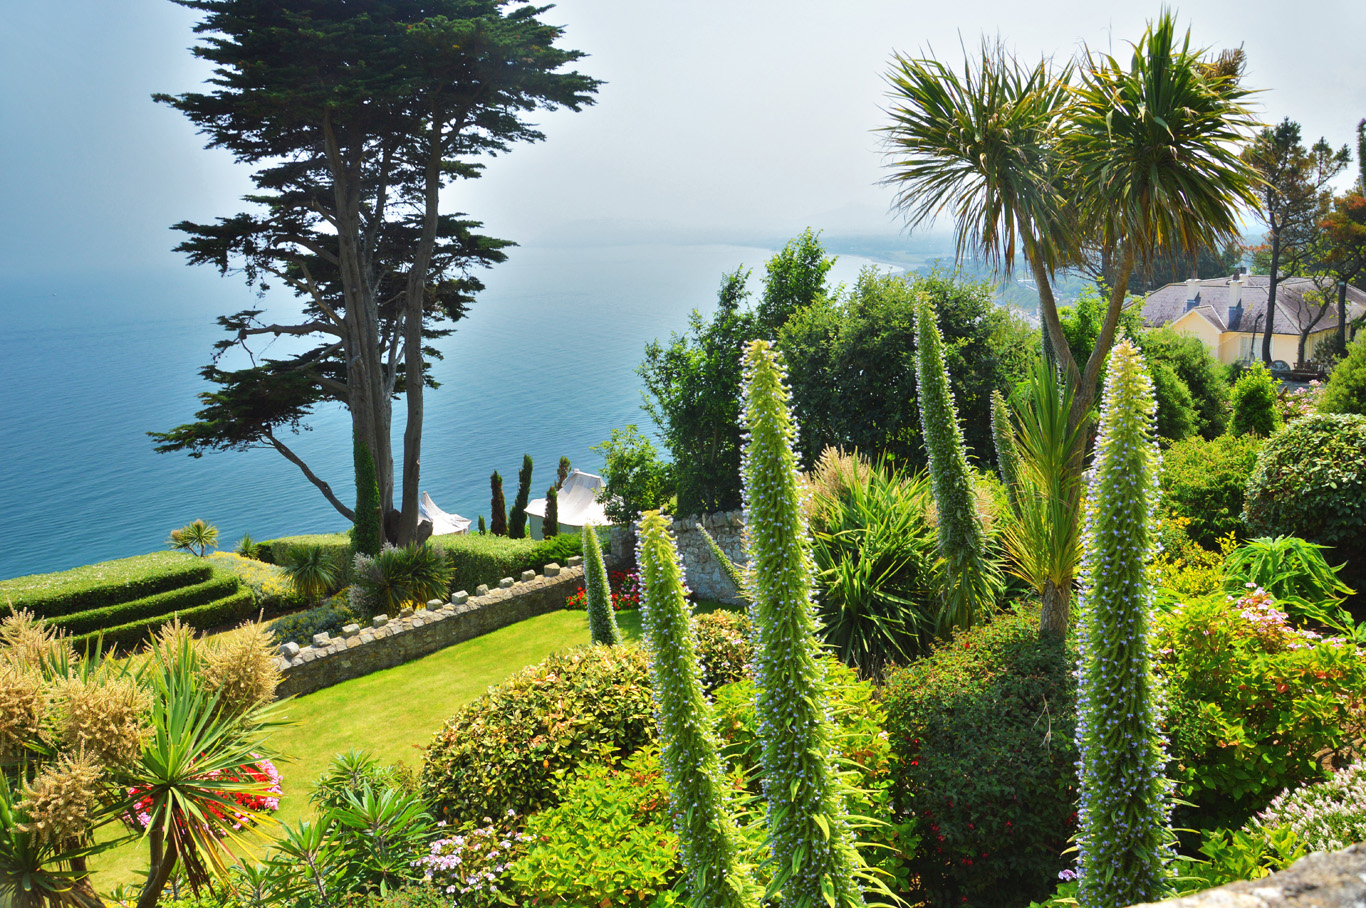 The coast in Killiney looks more Mediterranean than Irish